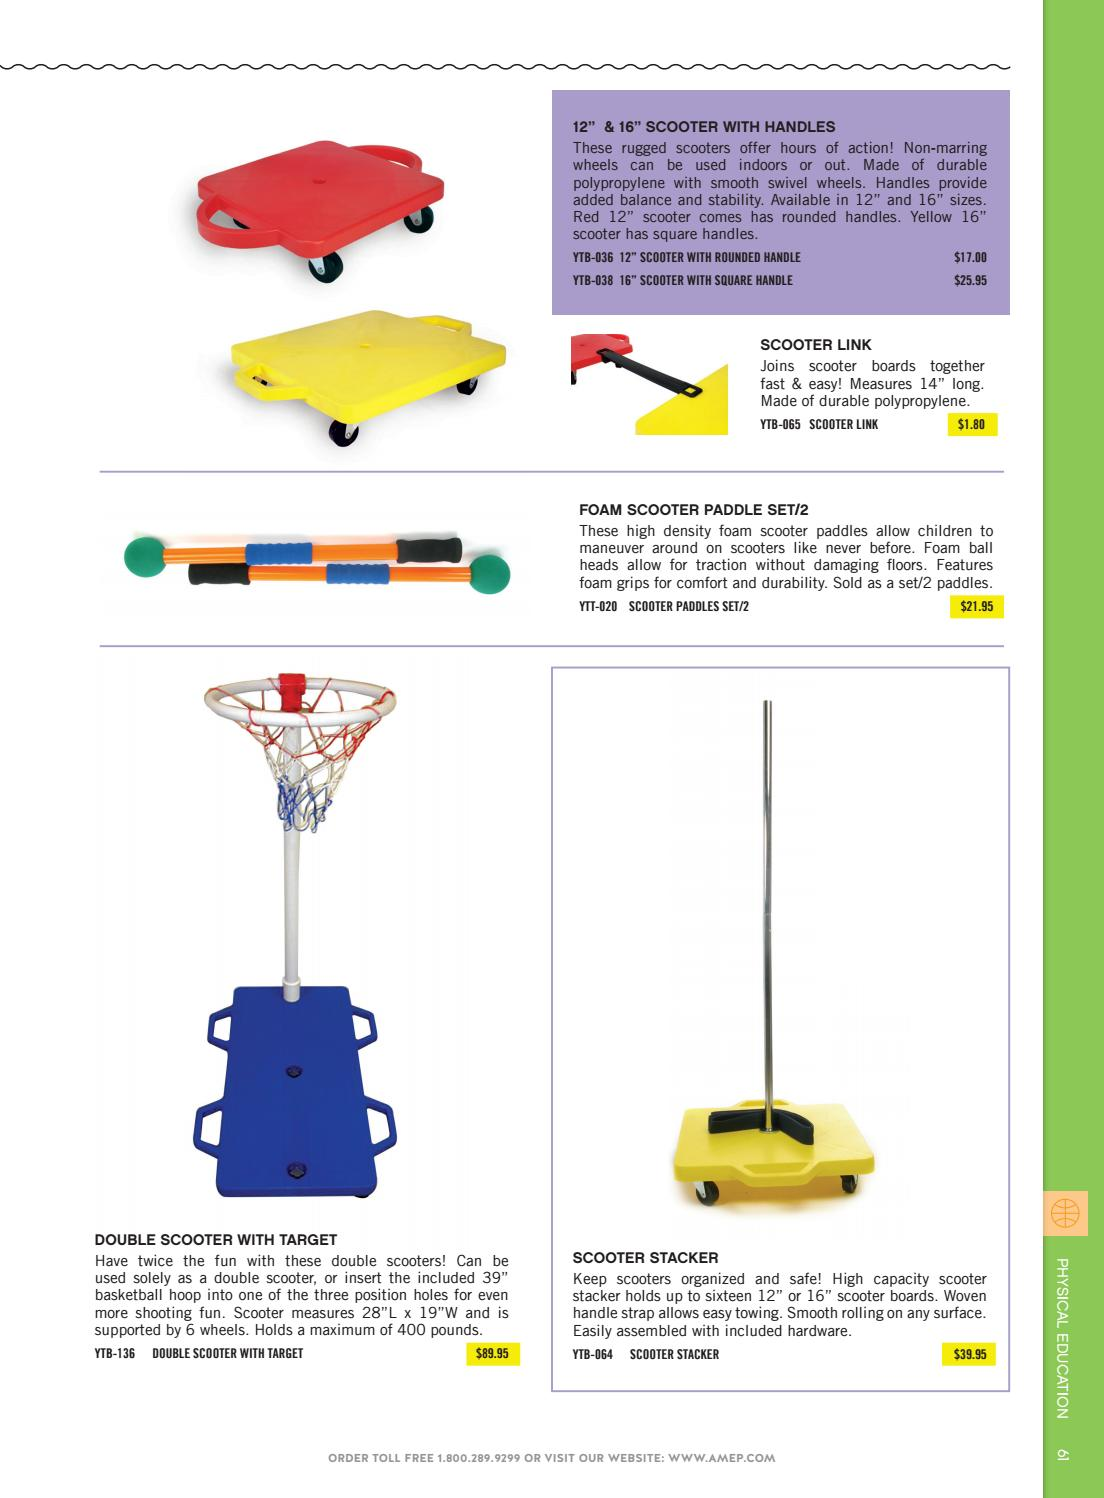 American Educational Products Foam Scooter Paddle Set of 2